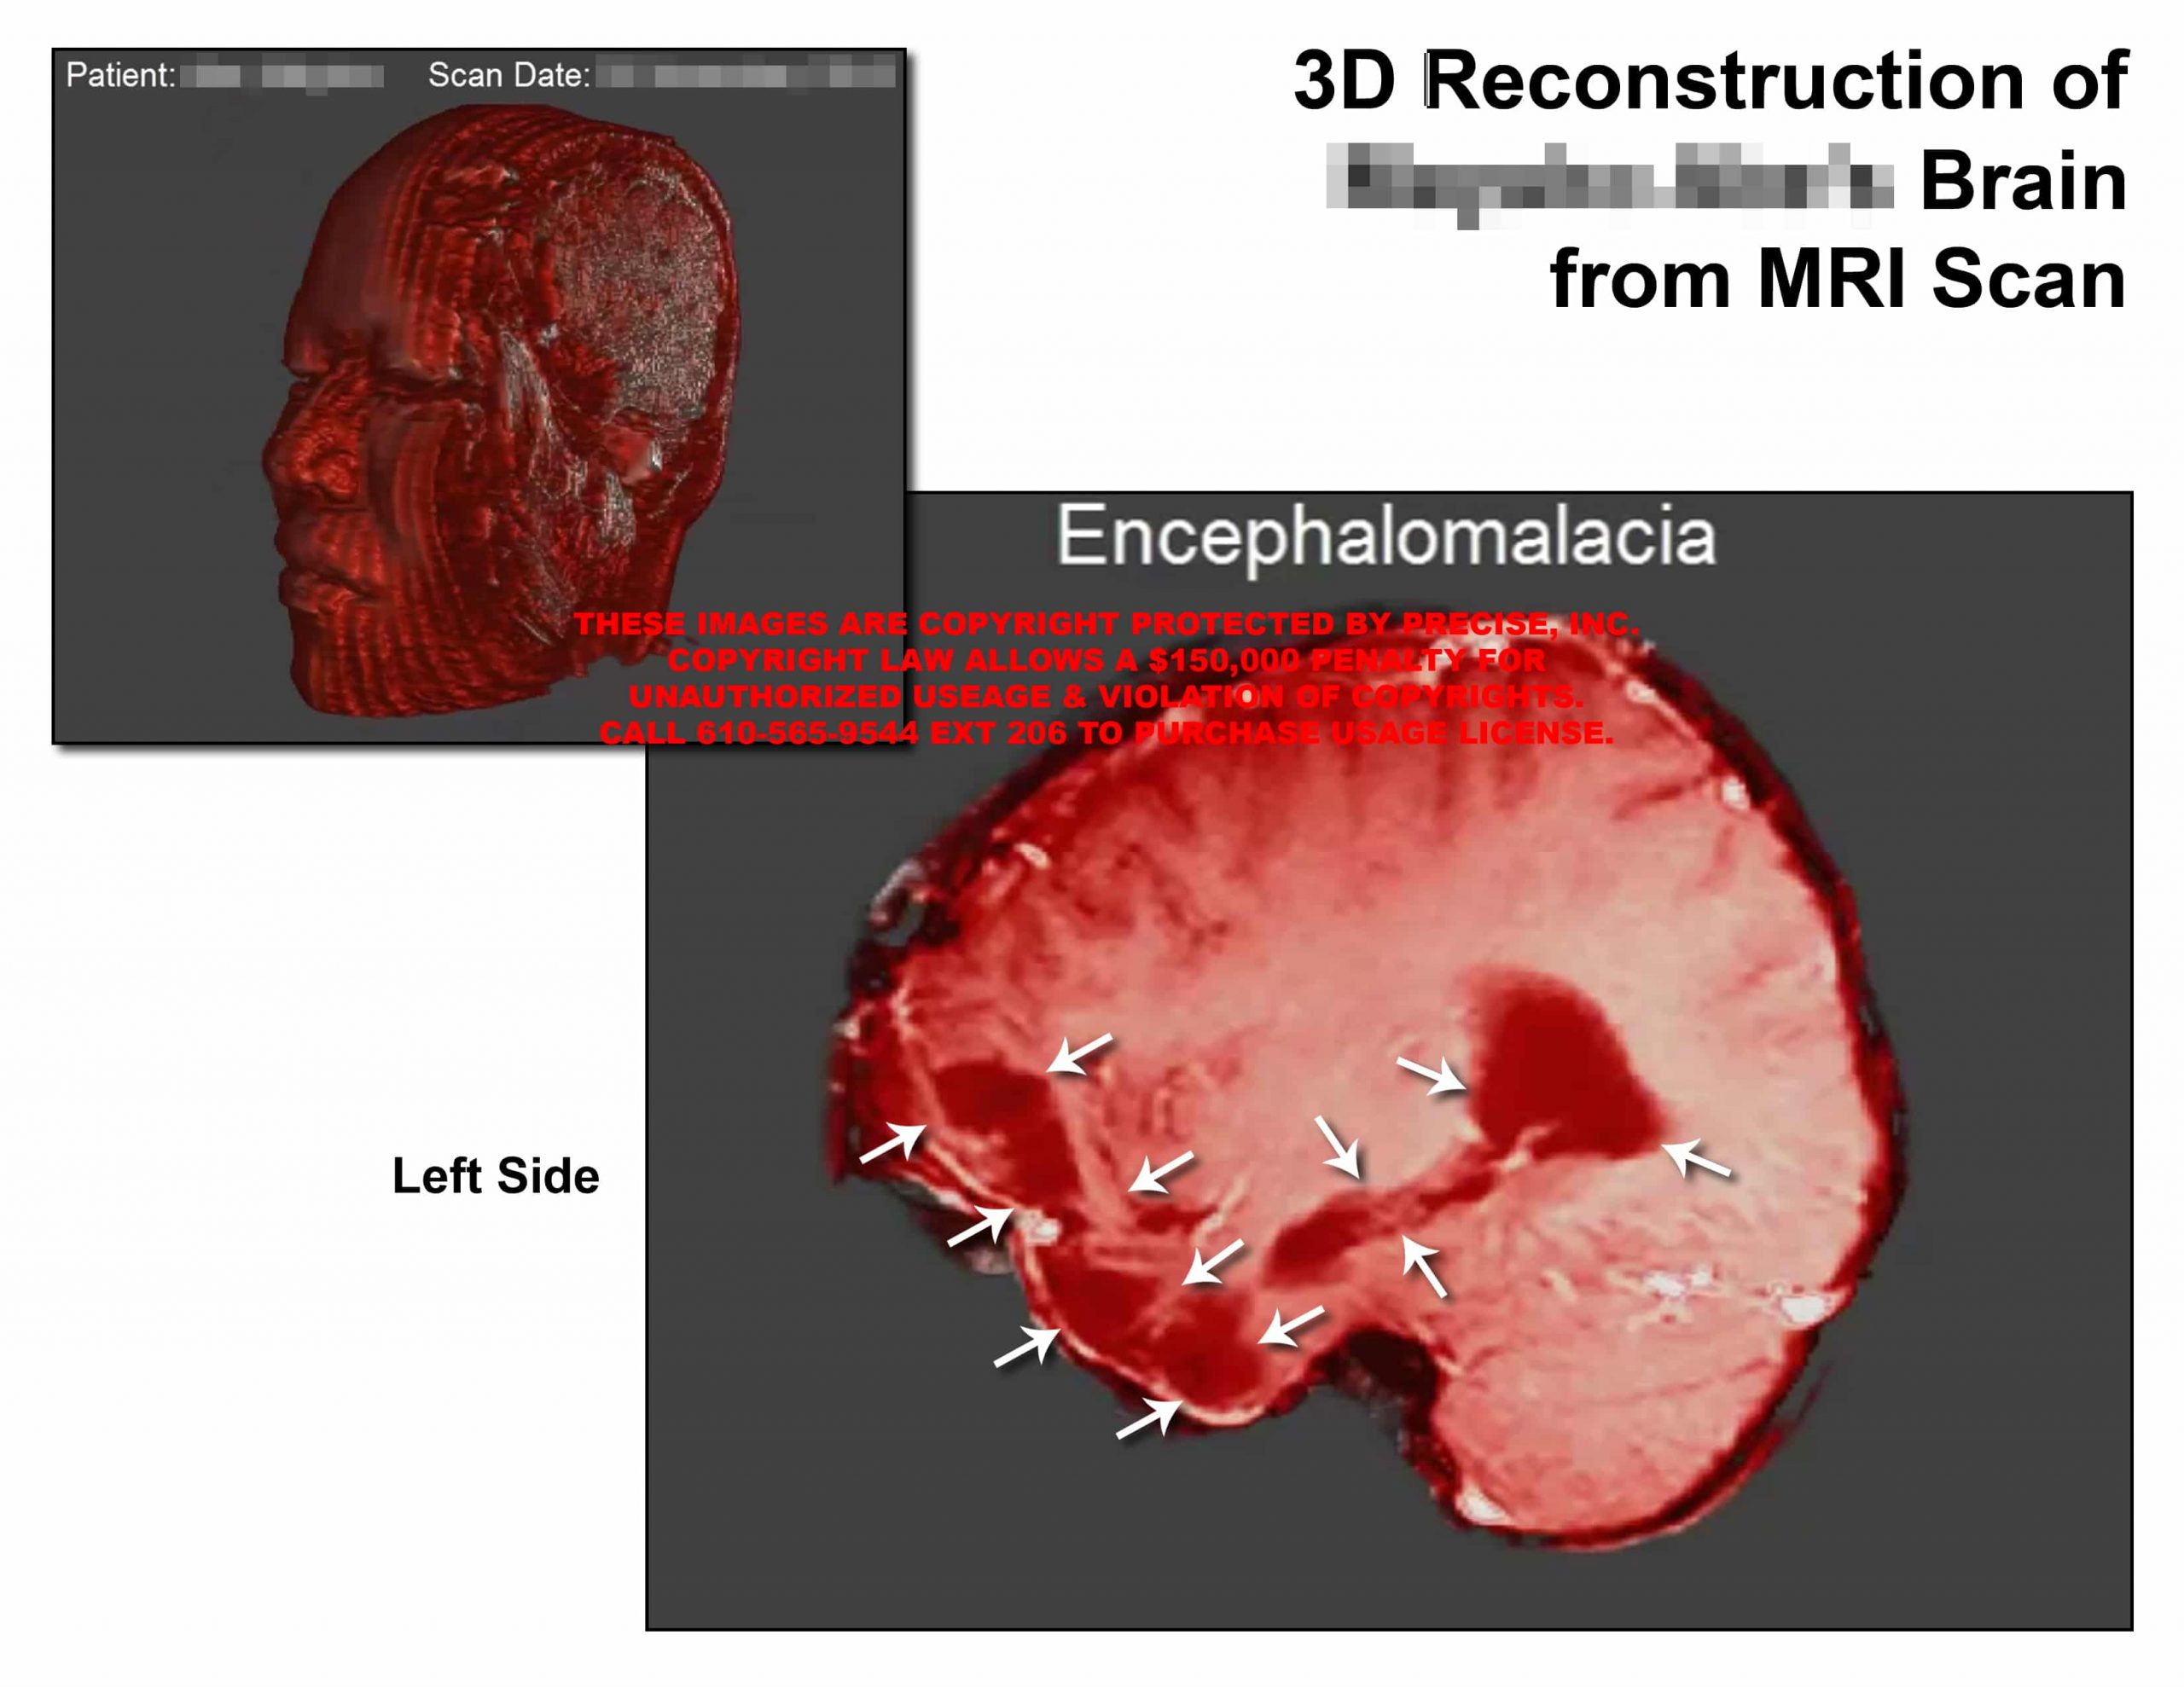 3D Reconstruction of Brain from MRI Scan II